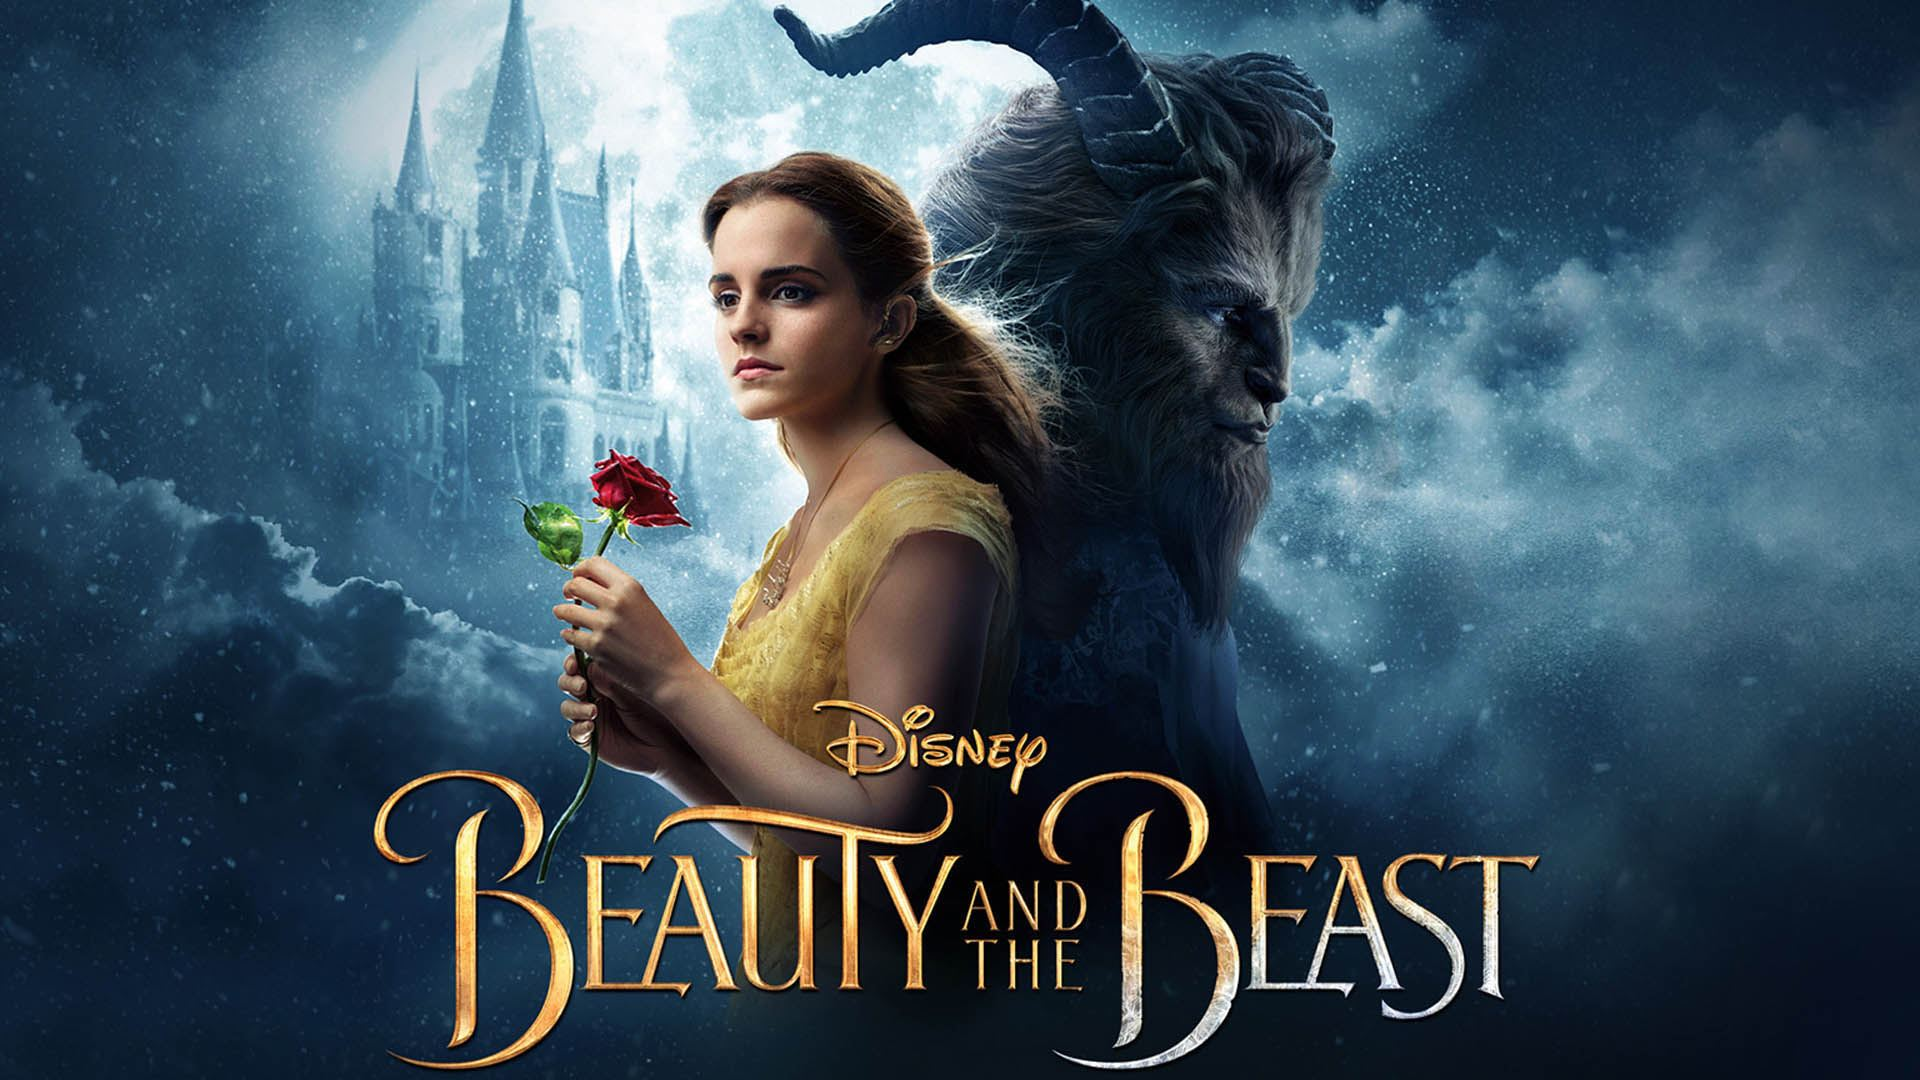 the-beauty-and-the-beast-2017-wallpaper-7235[1]